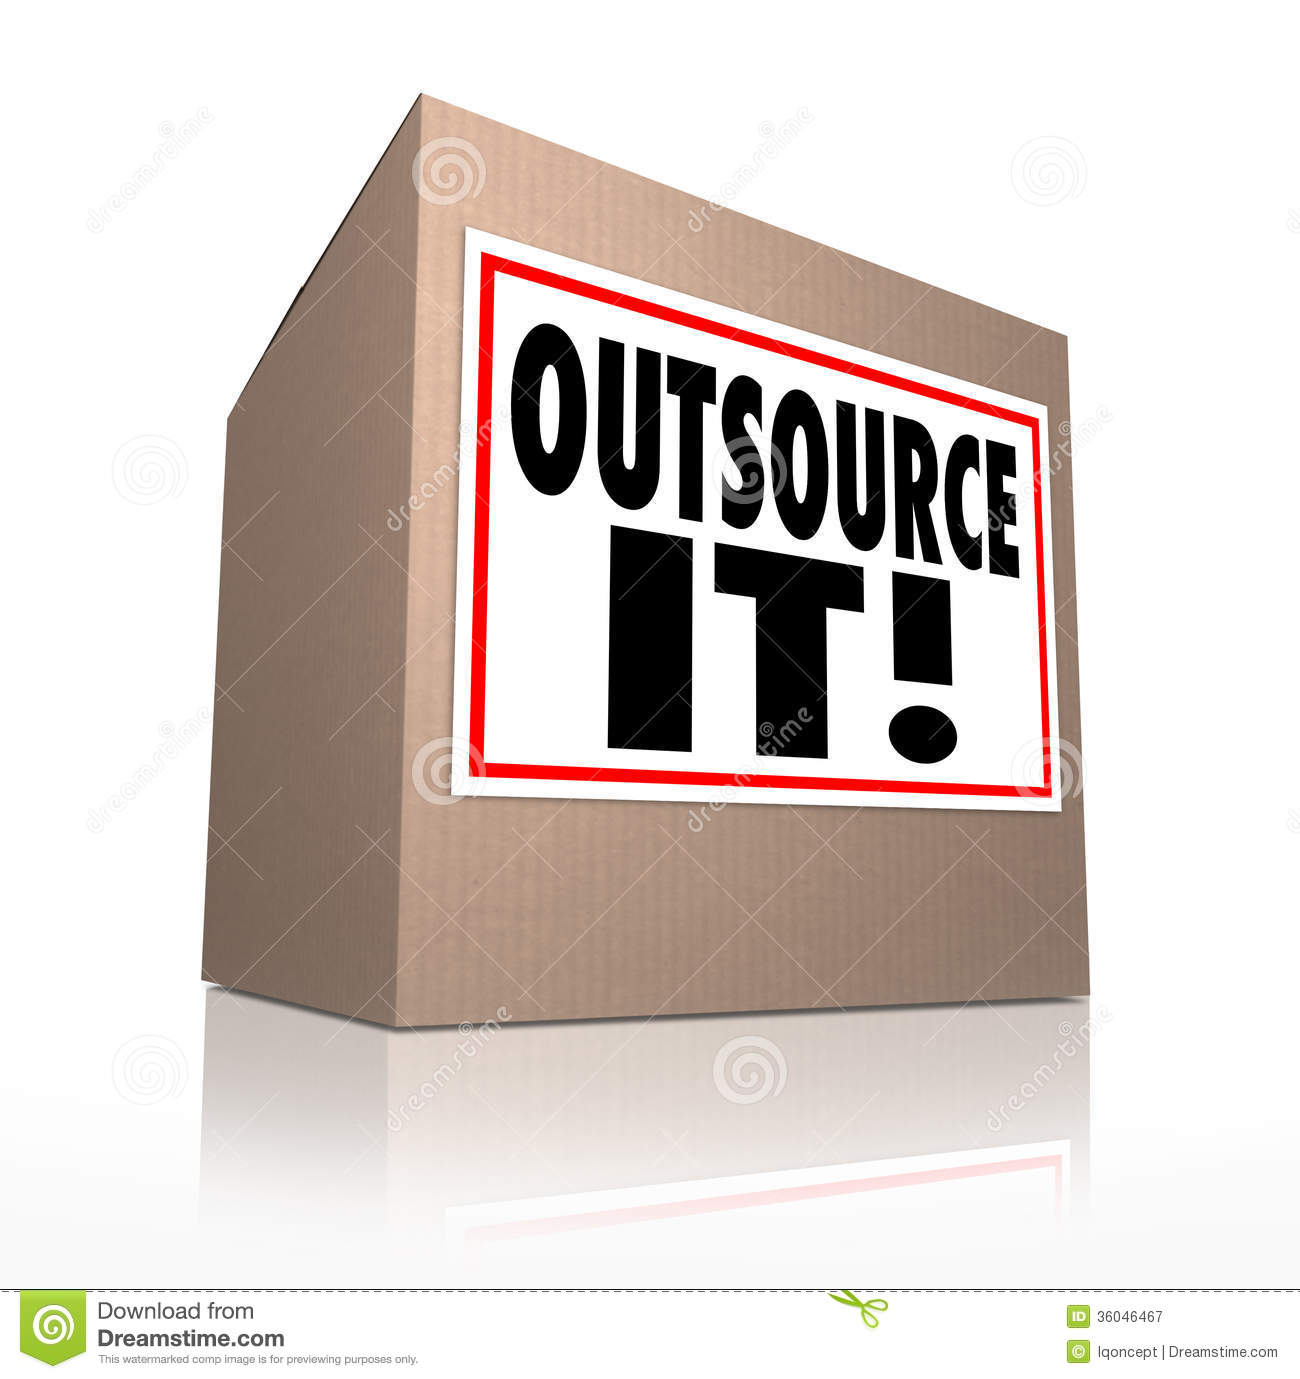 outsource it words cardboard box shipping jobs labor workforce outsource it words cardboard box shipping jobs labor workforce